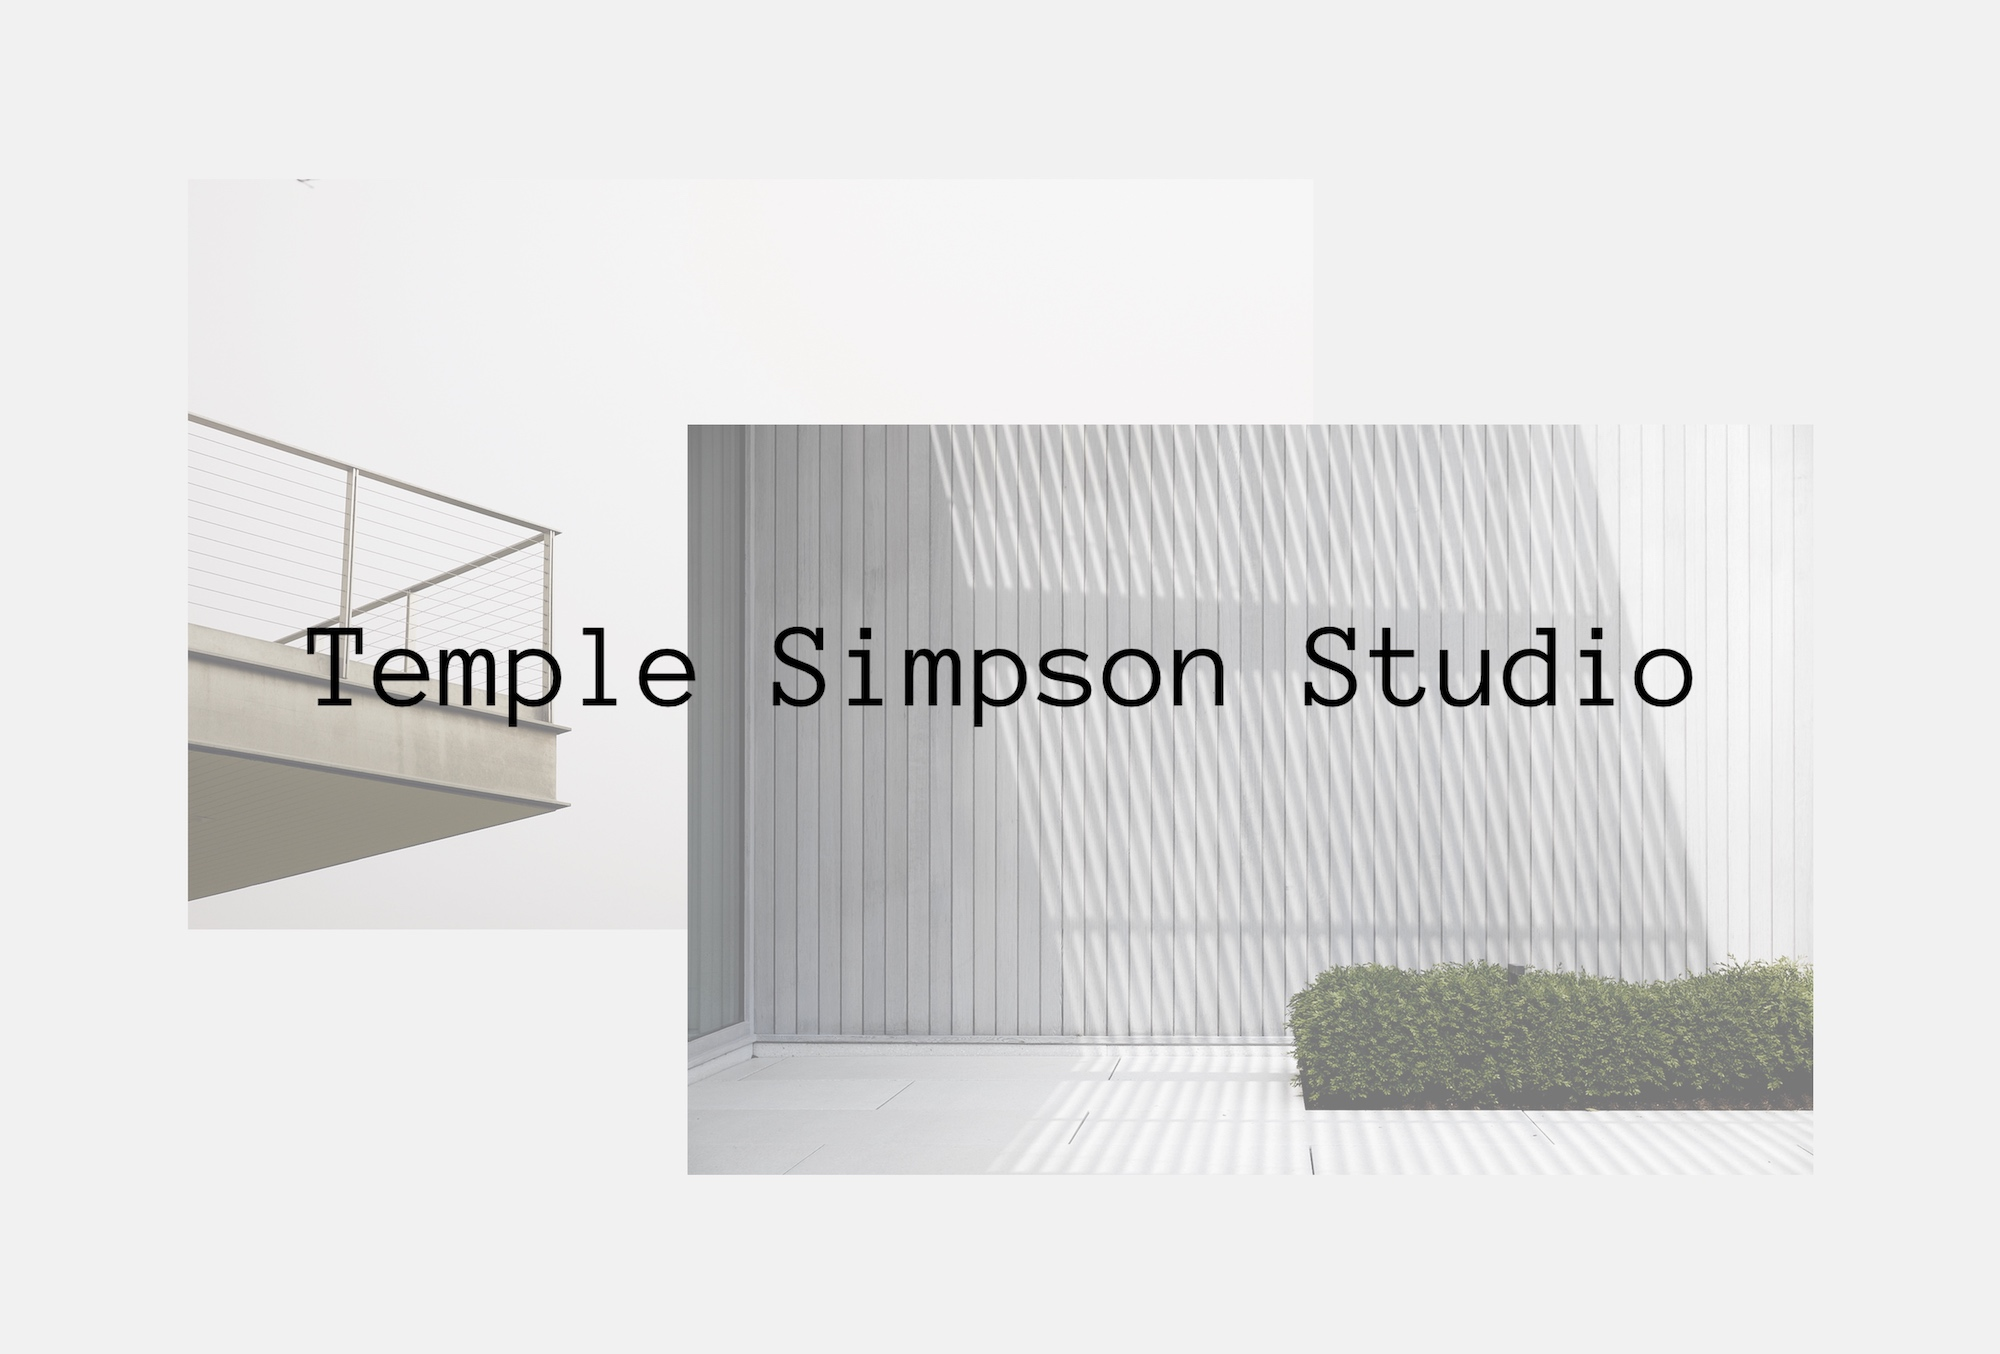 Temple Simpson Studio